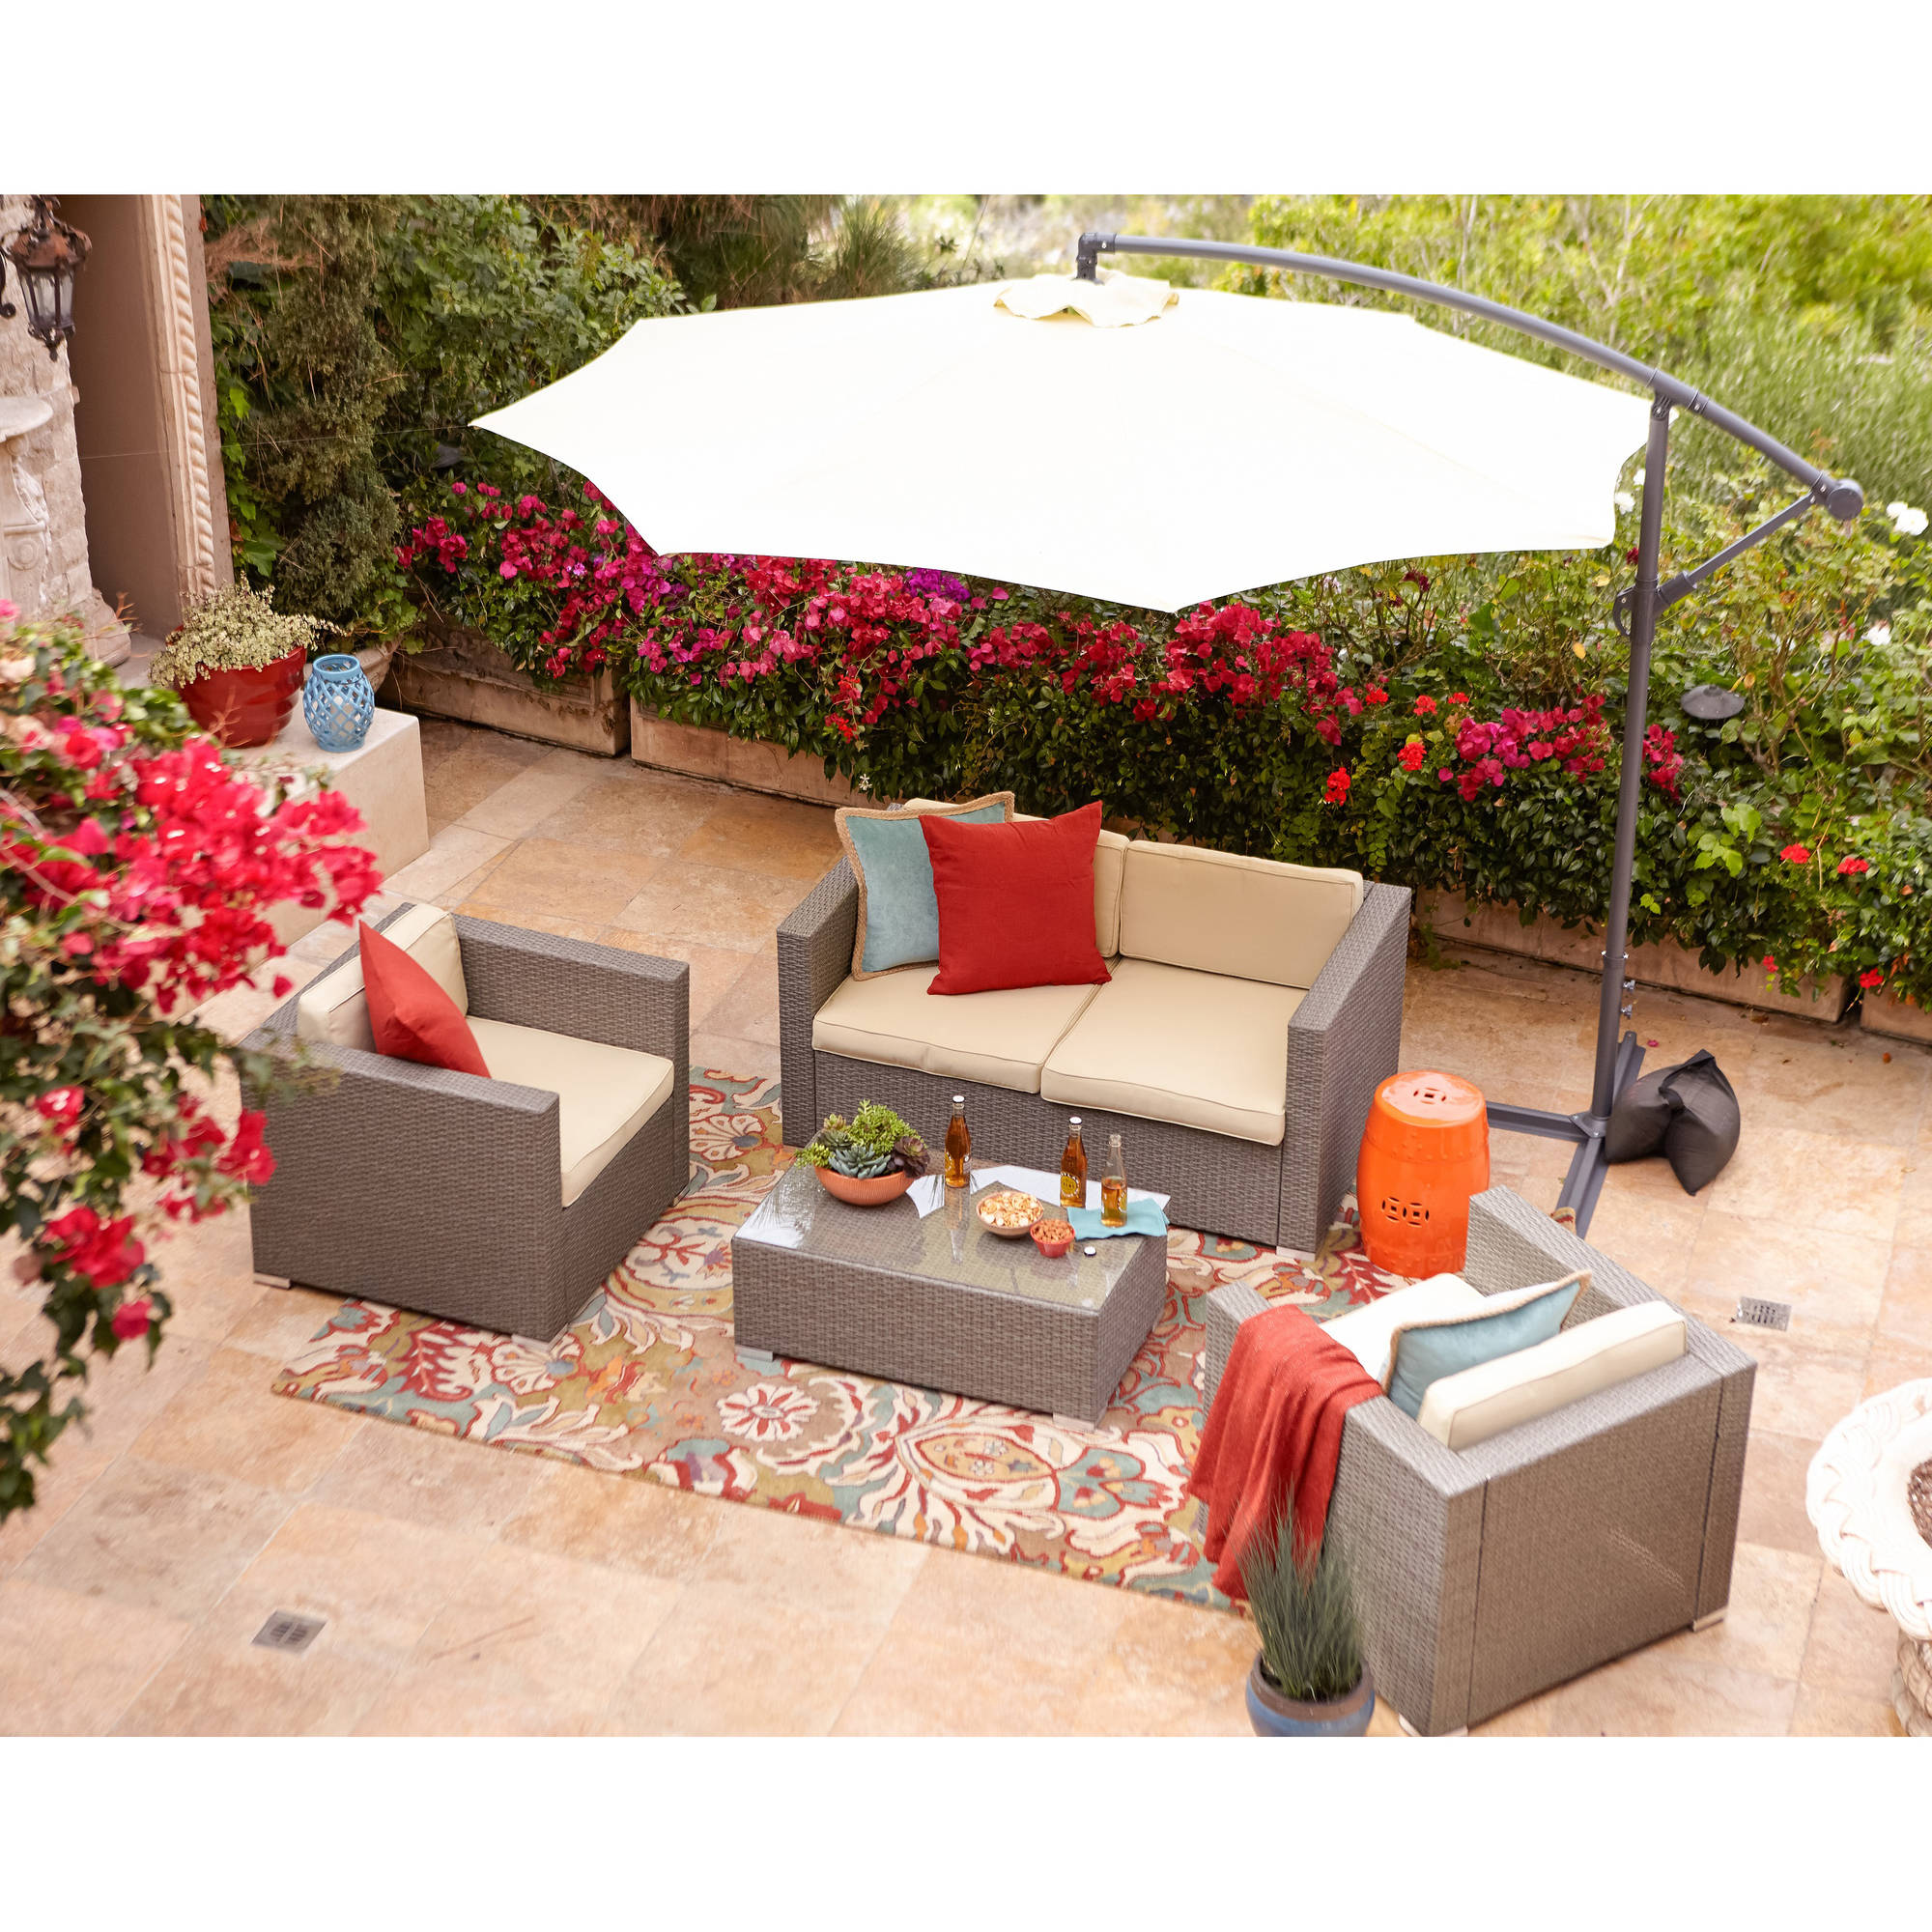 Incadozo 5-Piece Outdoor Wicker Conversation Set, Rustic Light Brown with Beige Cushions by